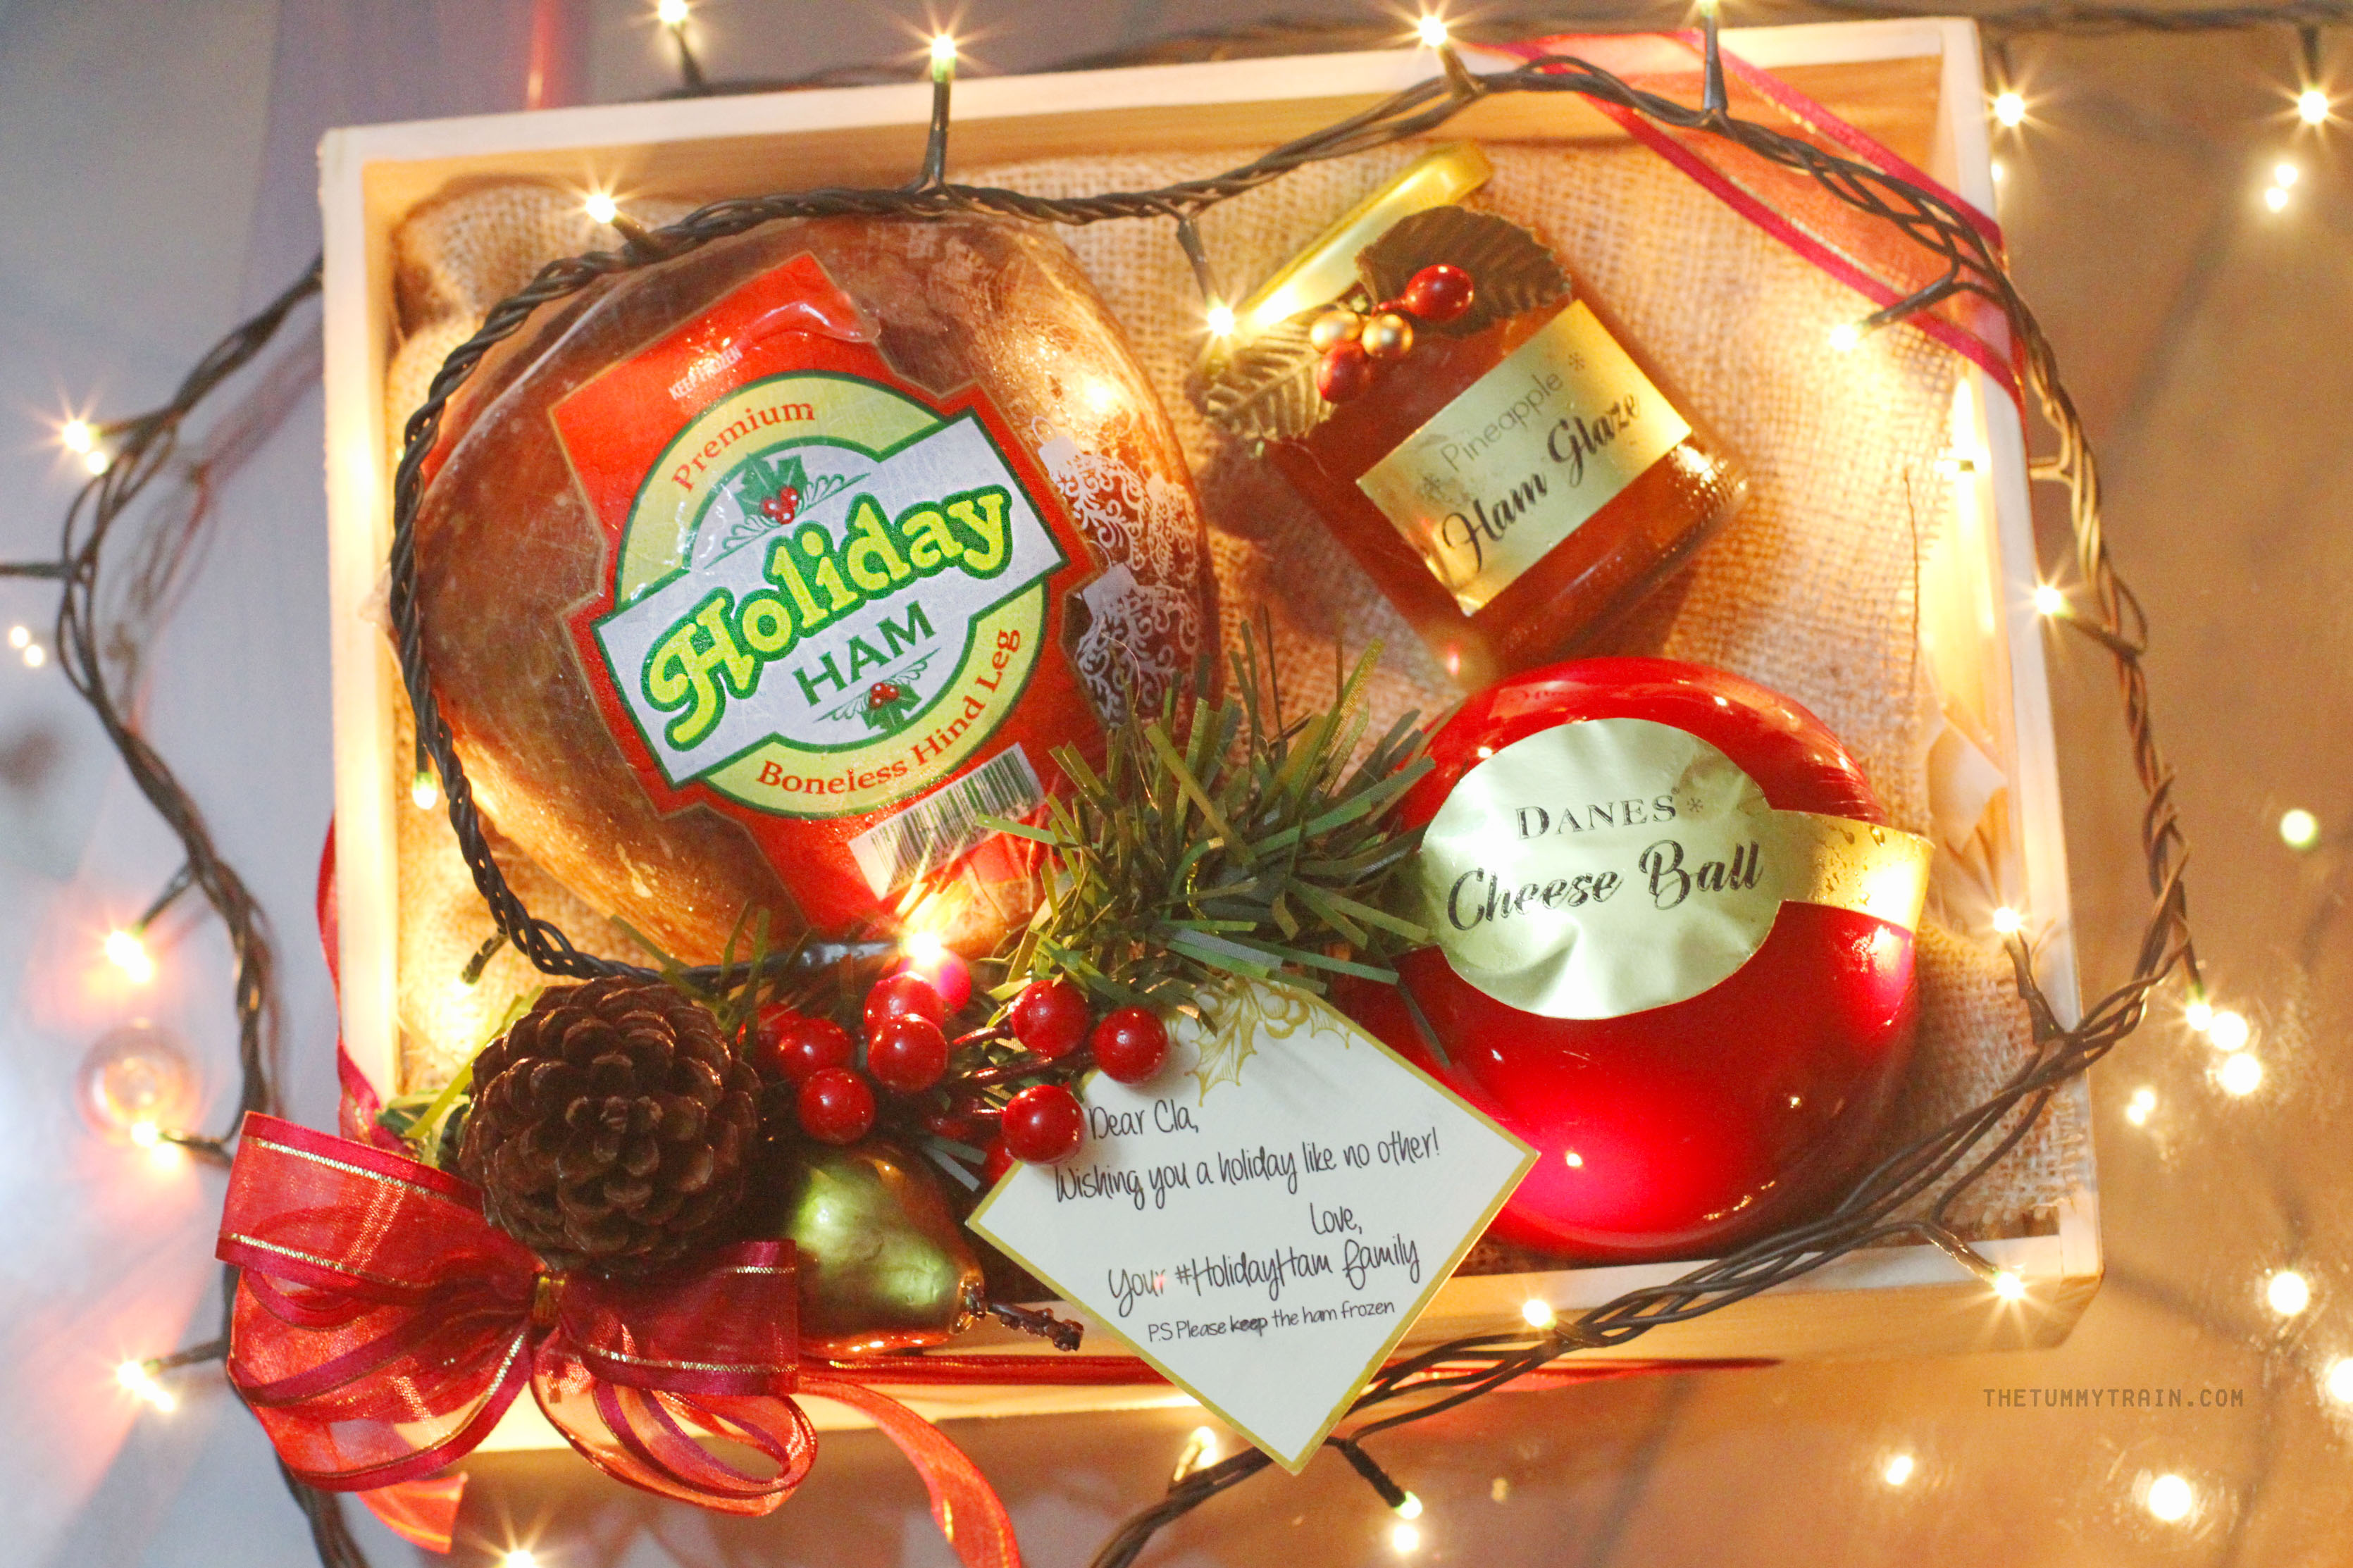 Holiday Ham 1 - Taste the difference this Christmas with Holiday Whole-Meat Ham!